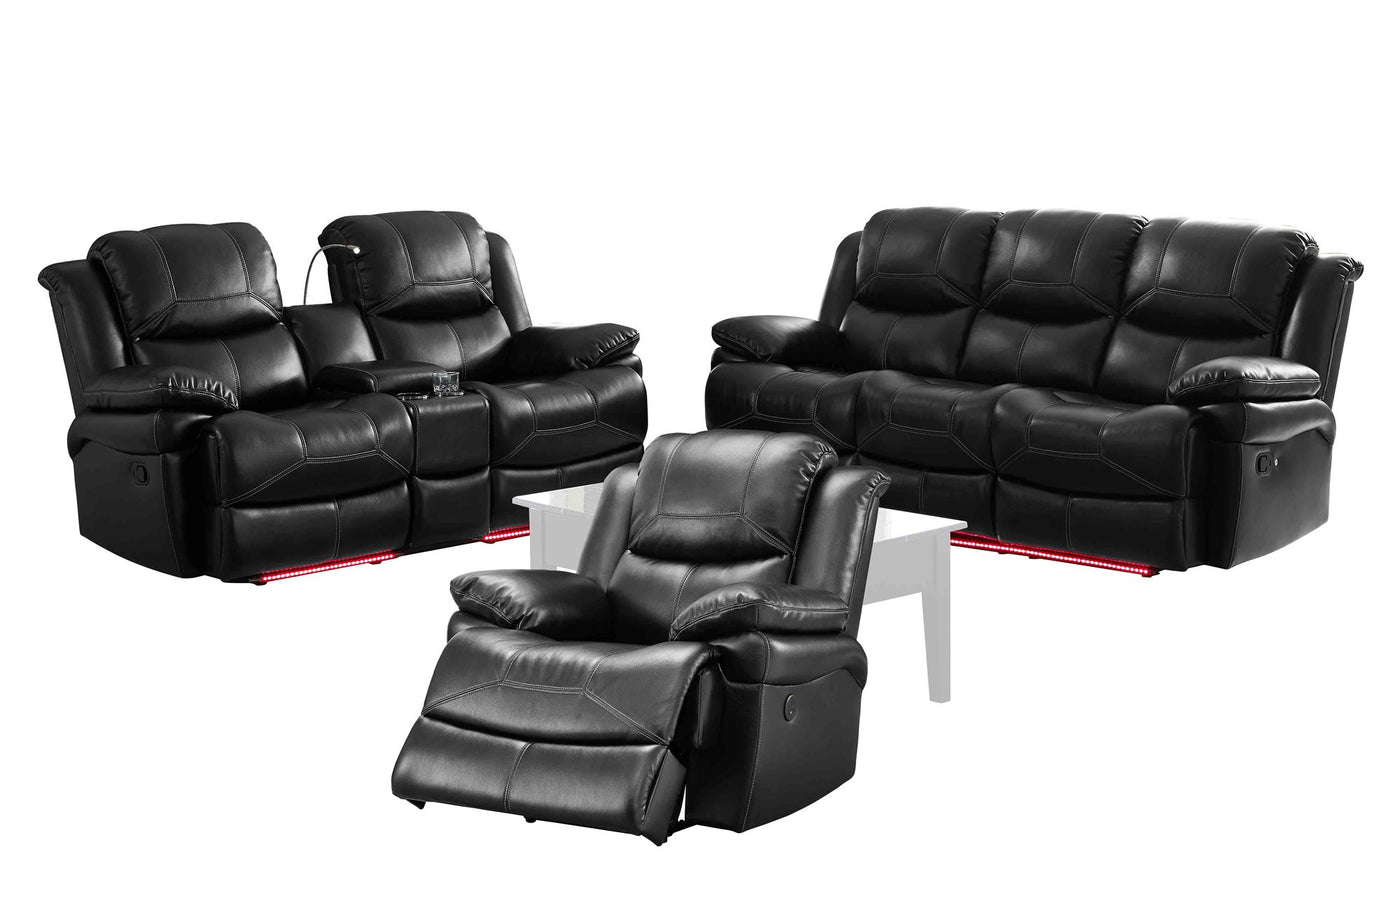 New Classic Flynn 3pc Dual Recliner Sofa Recliner Console Love Seat